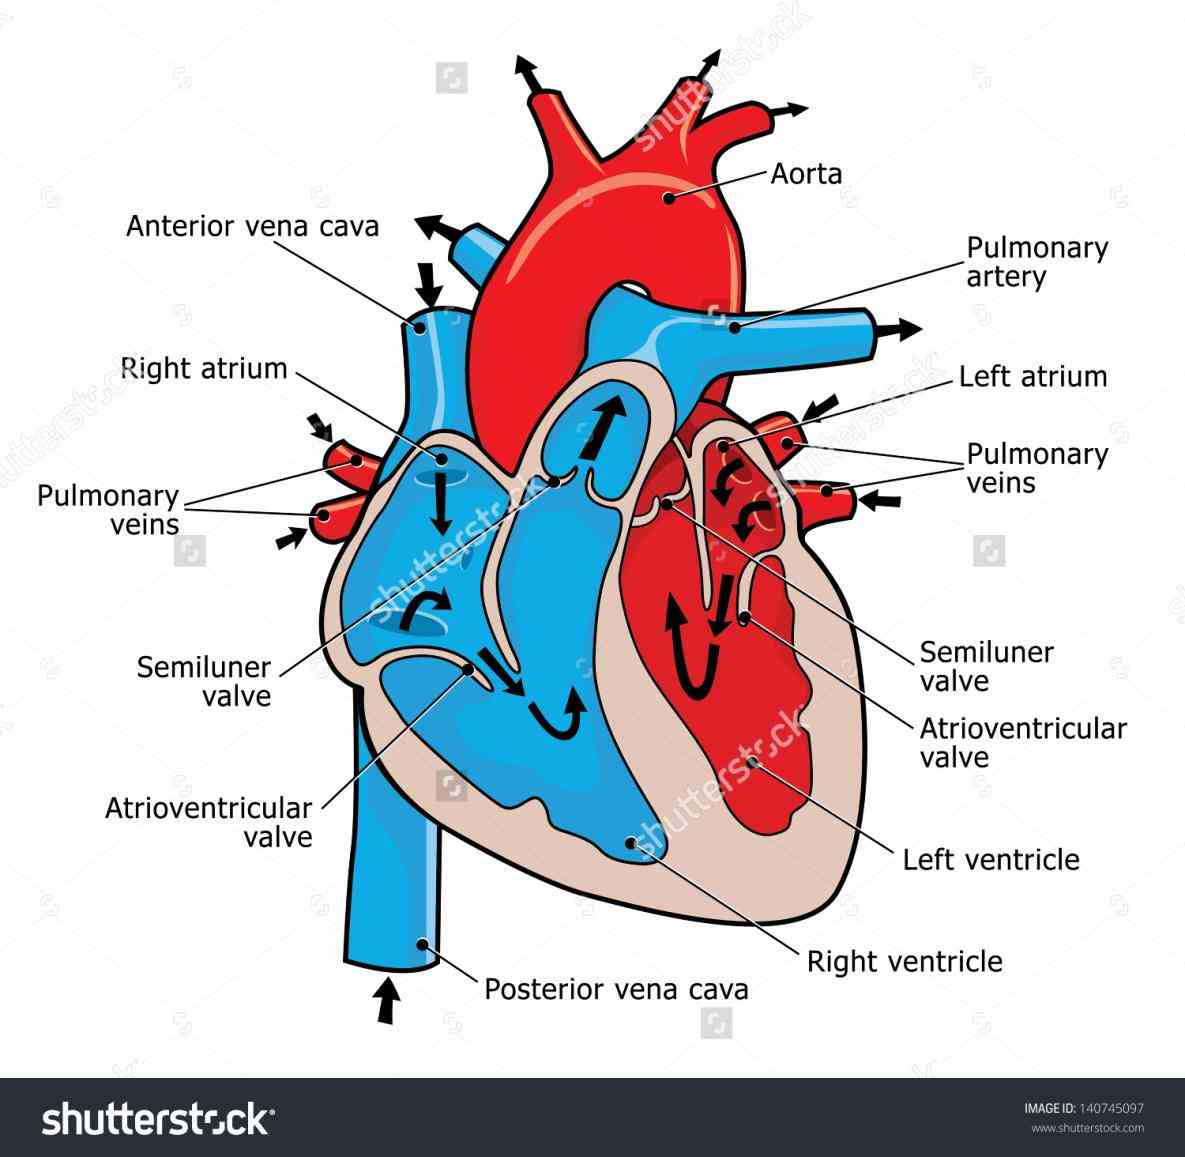 Images Of Human Heart Anatomy Pictures Wallpapers